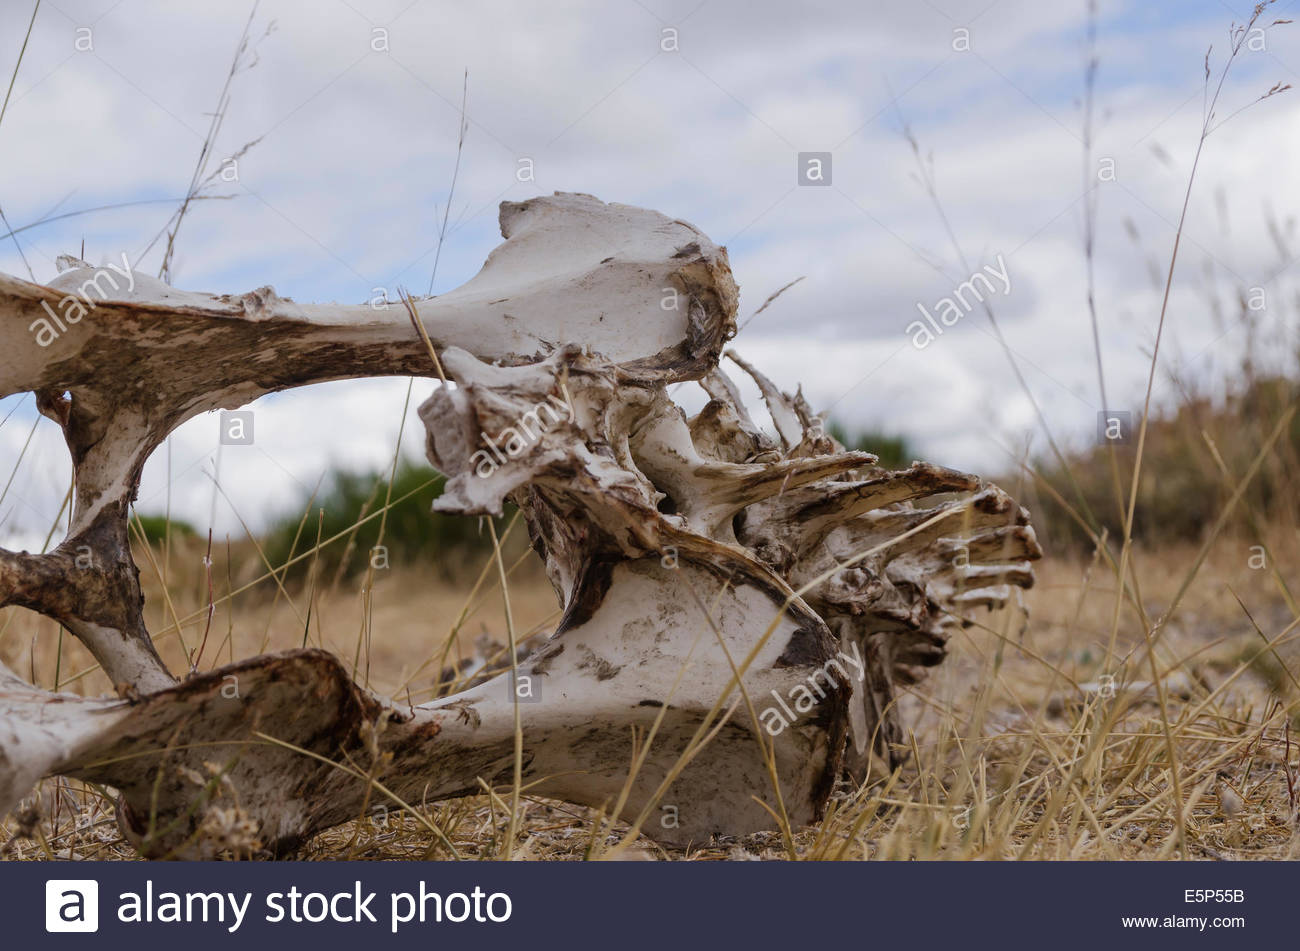 Bones with rotten meat. Skeleton of a vertebrate animal lying on the ground. - Stock Image